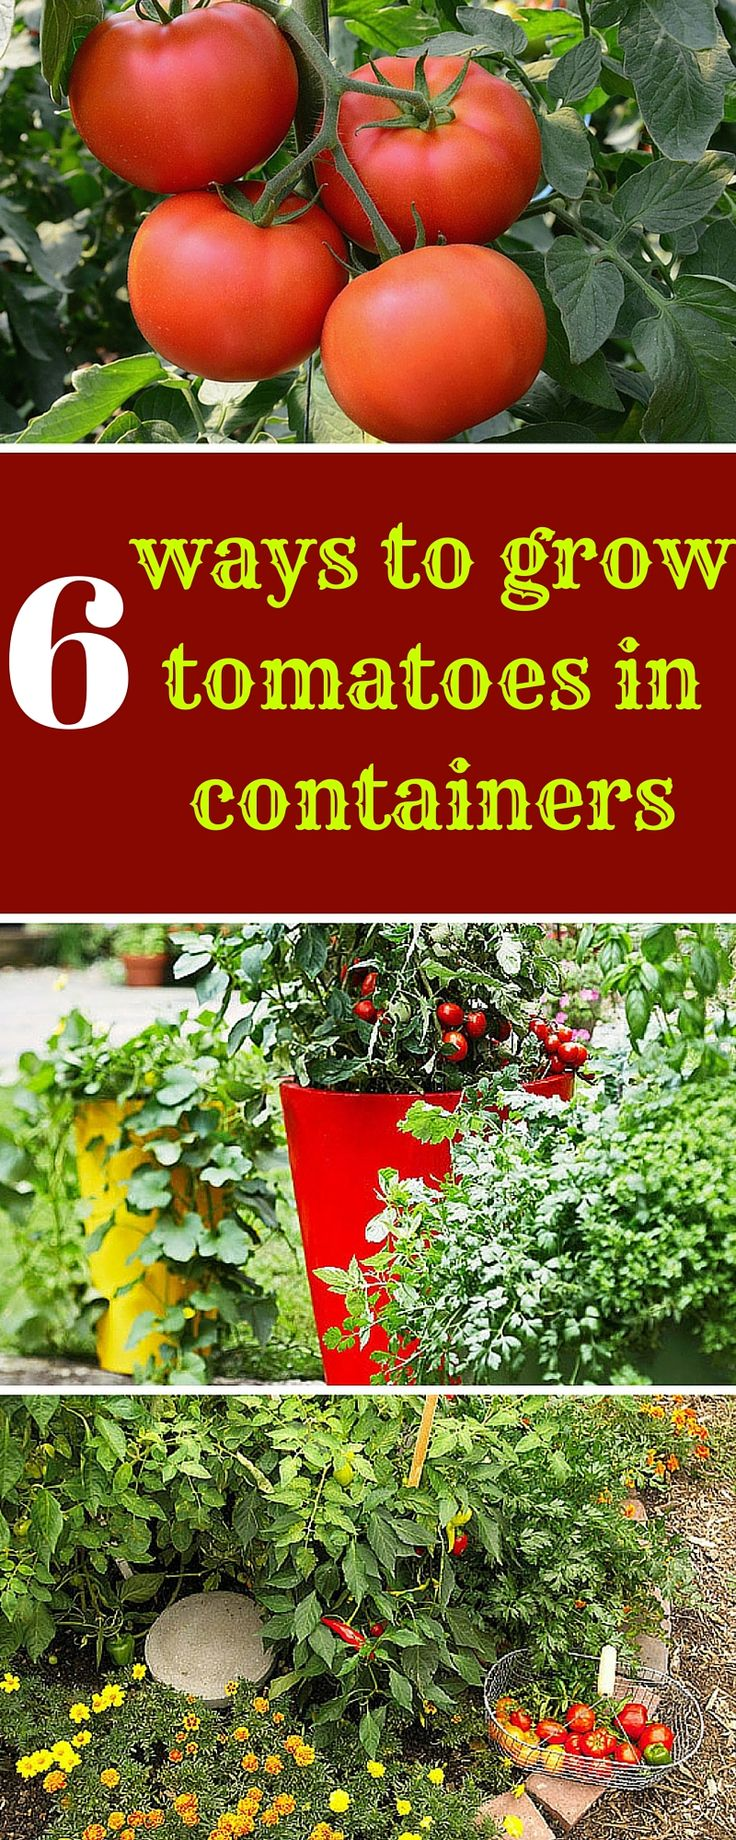 51 best images about container tomatoes on pinterest gardens vegetables and growing tomatoes. Black Bedroom Furniture Sets. Home Design Ideas